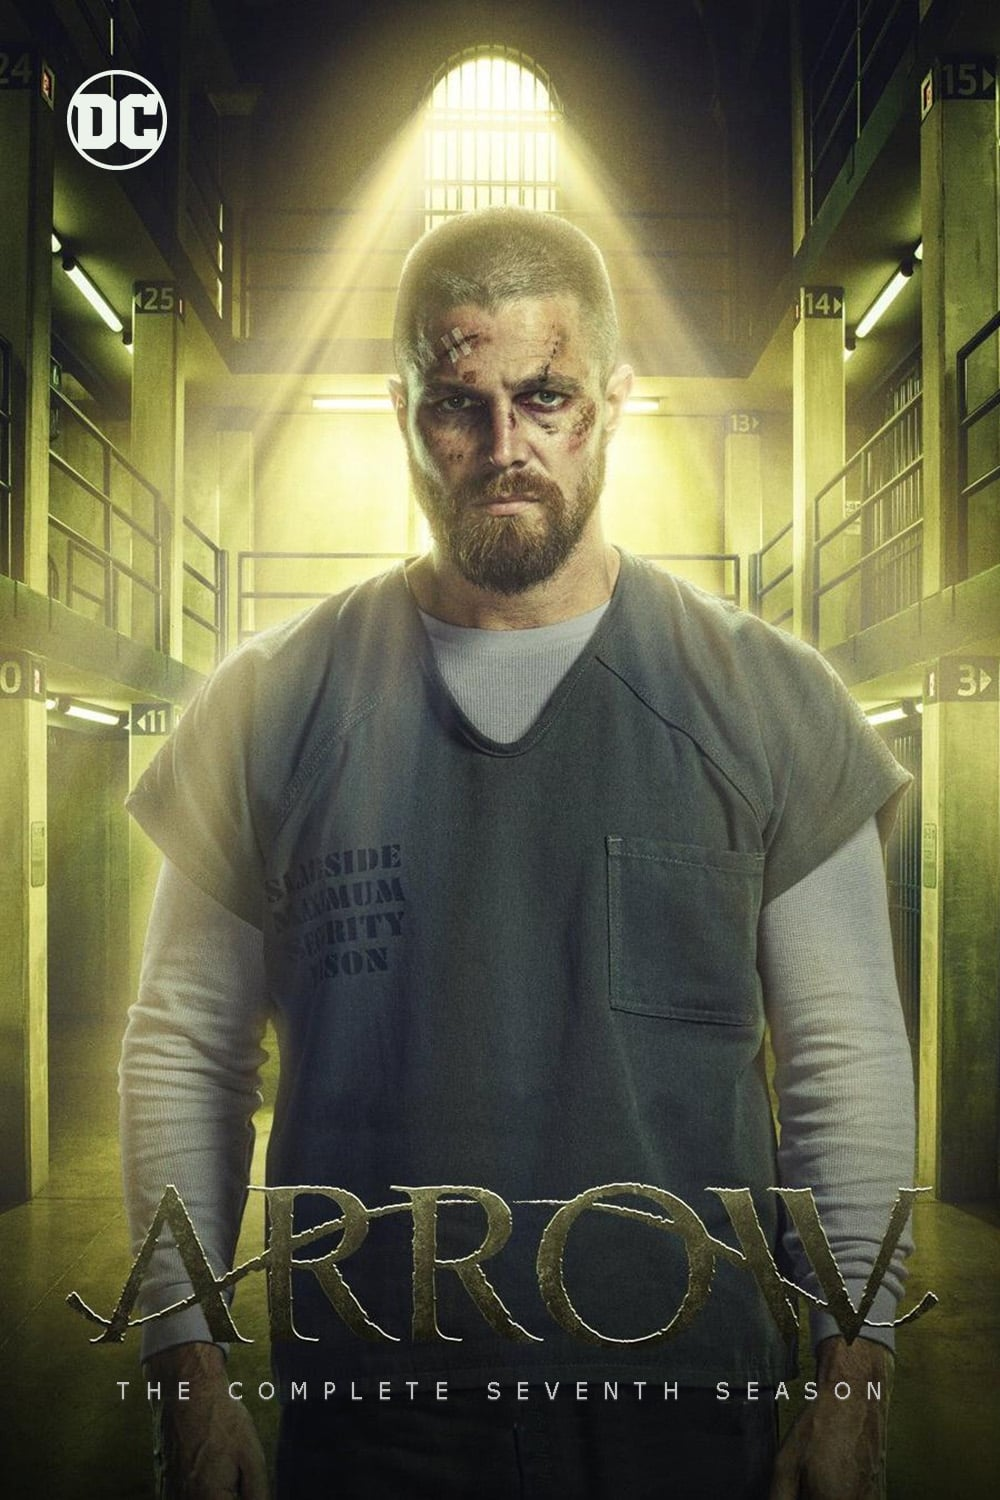 Arrow Season 7 Episode 13 Added